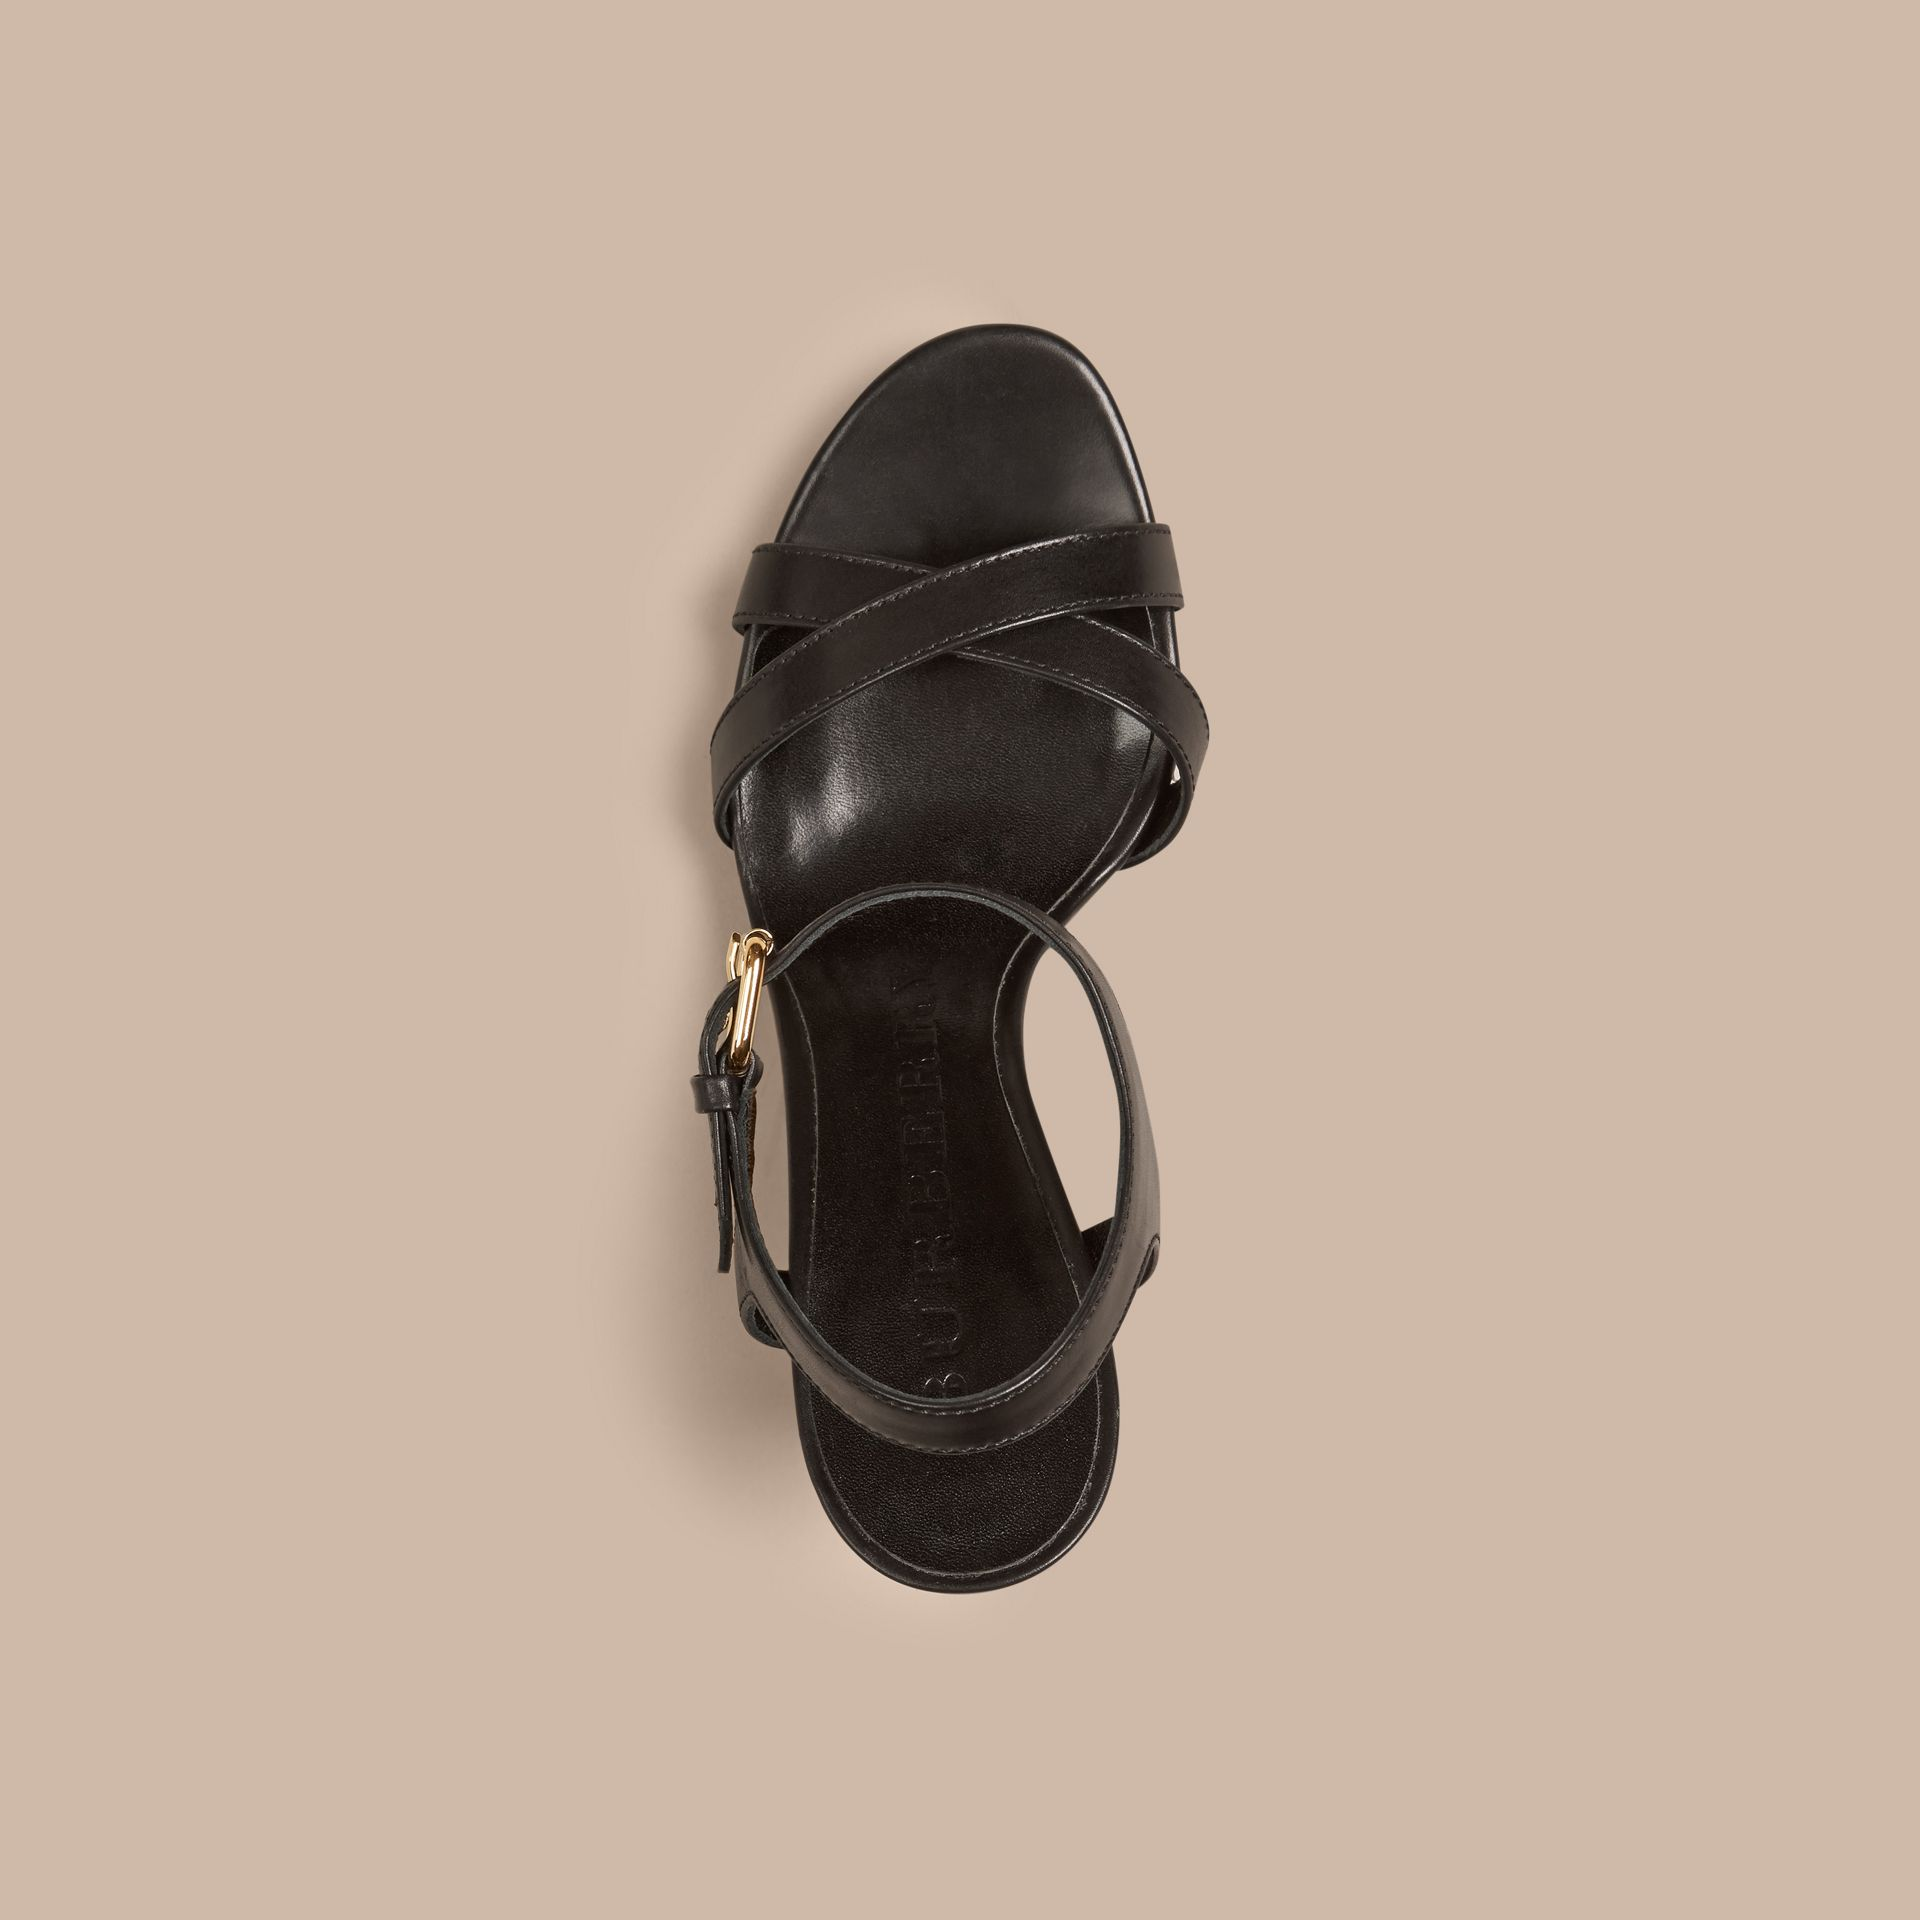 House Check and Leather Wedge Sandals in Black - Women | Burberry Australia - gallery image 4